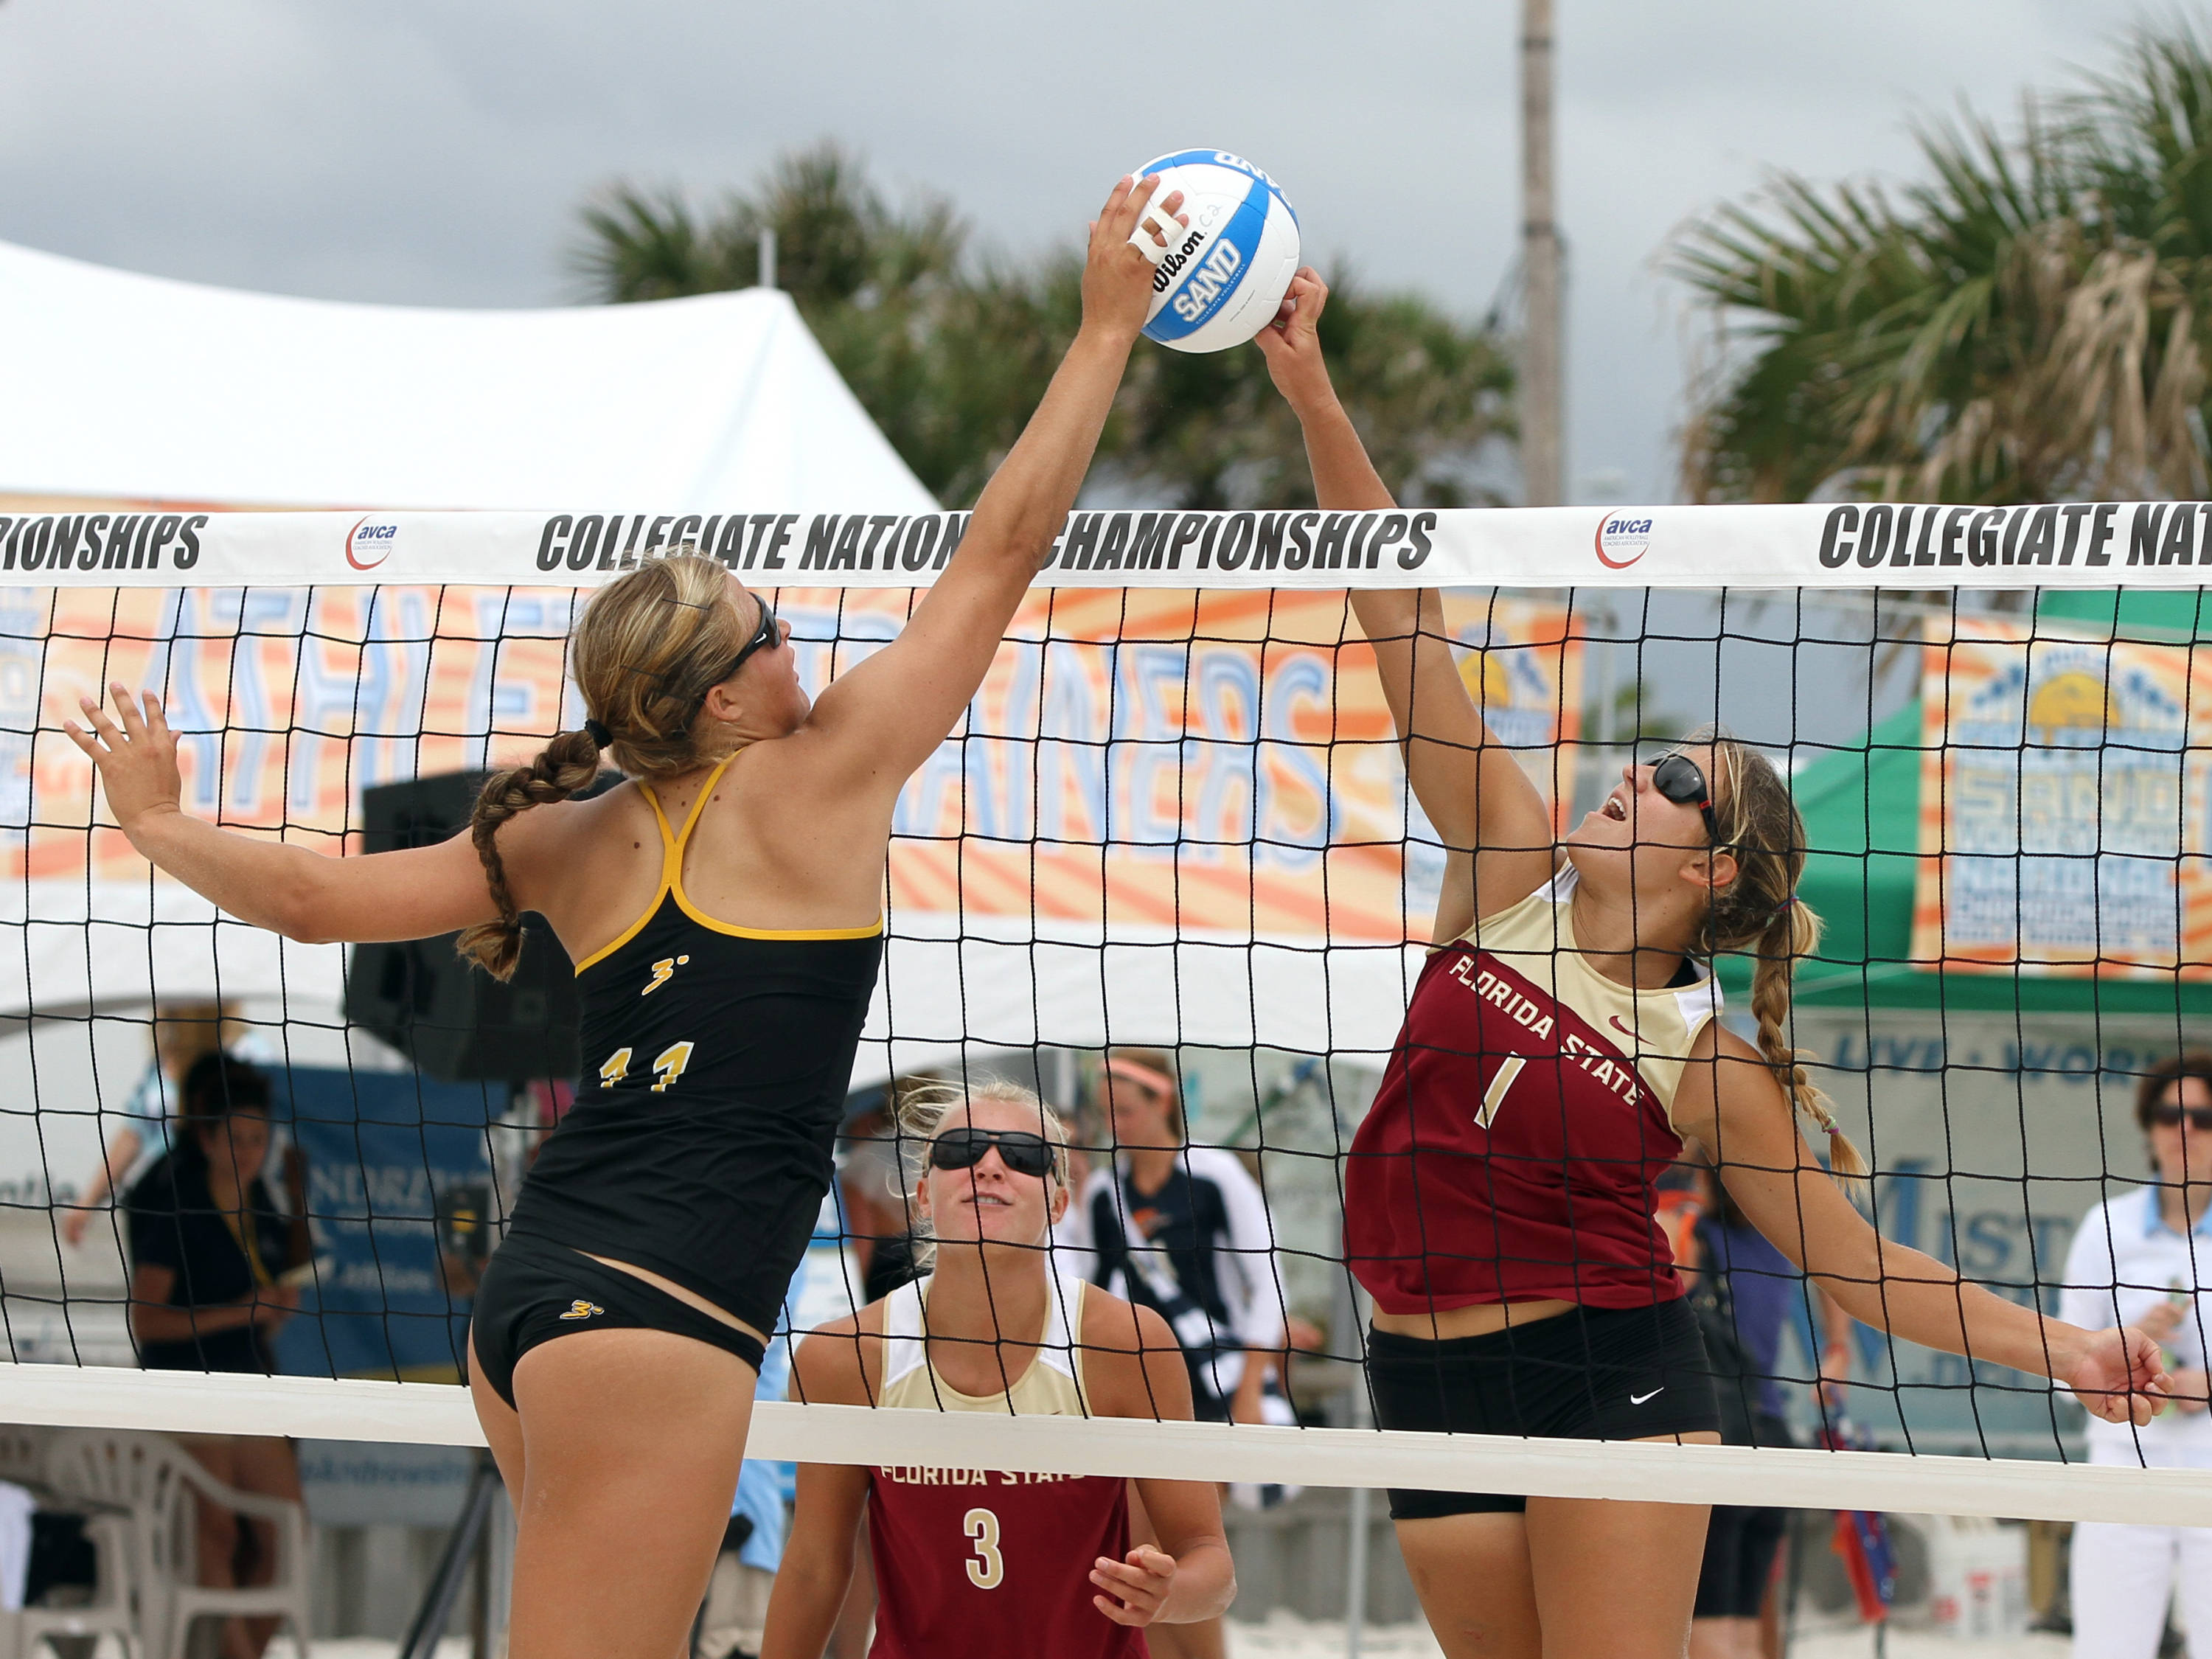 Melanie Pavels (1), AVCA Collegiate Sand Volleyball National Championships,  Gulf Shores, Alabama,05/03/13 . (Photo by Steve Musco)